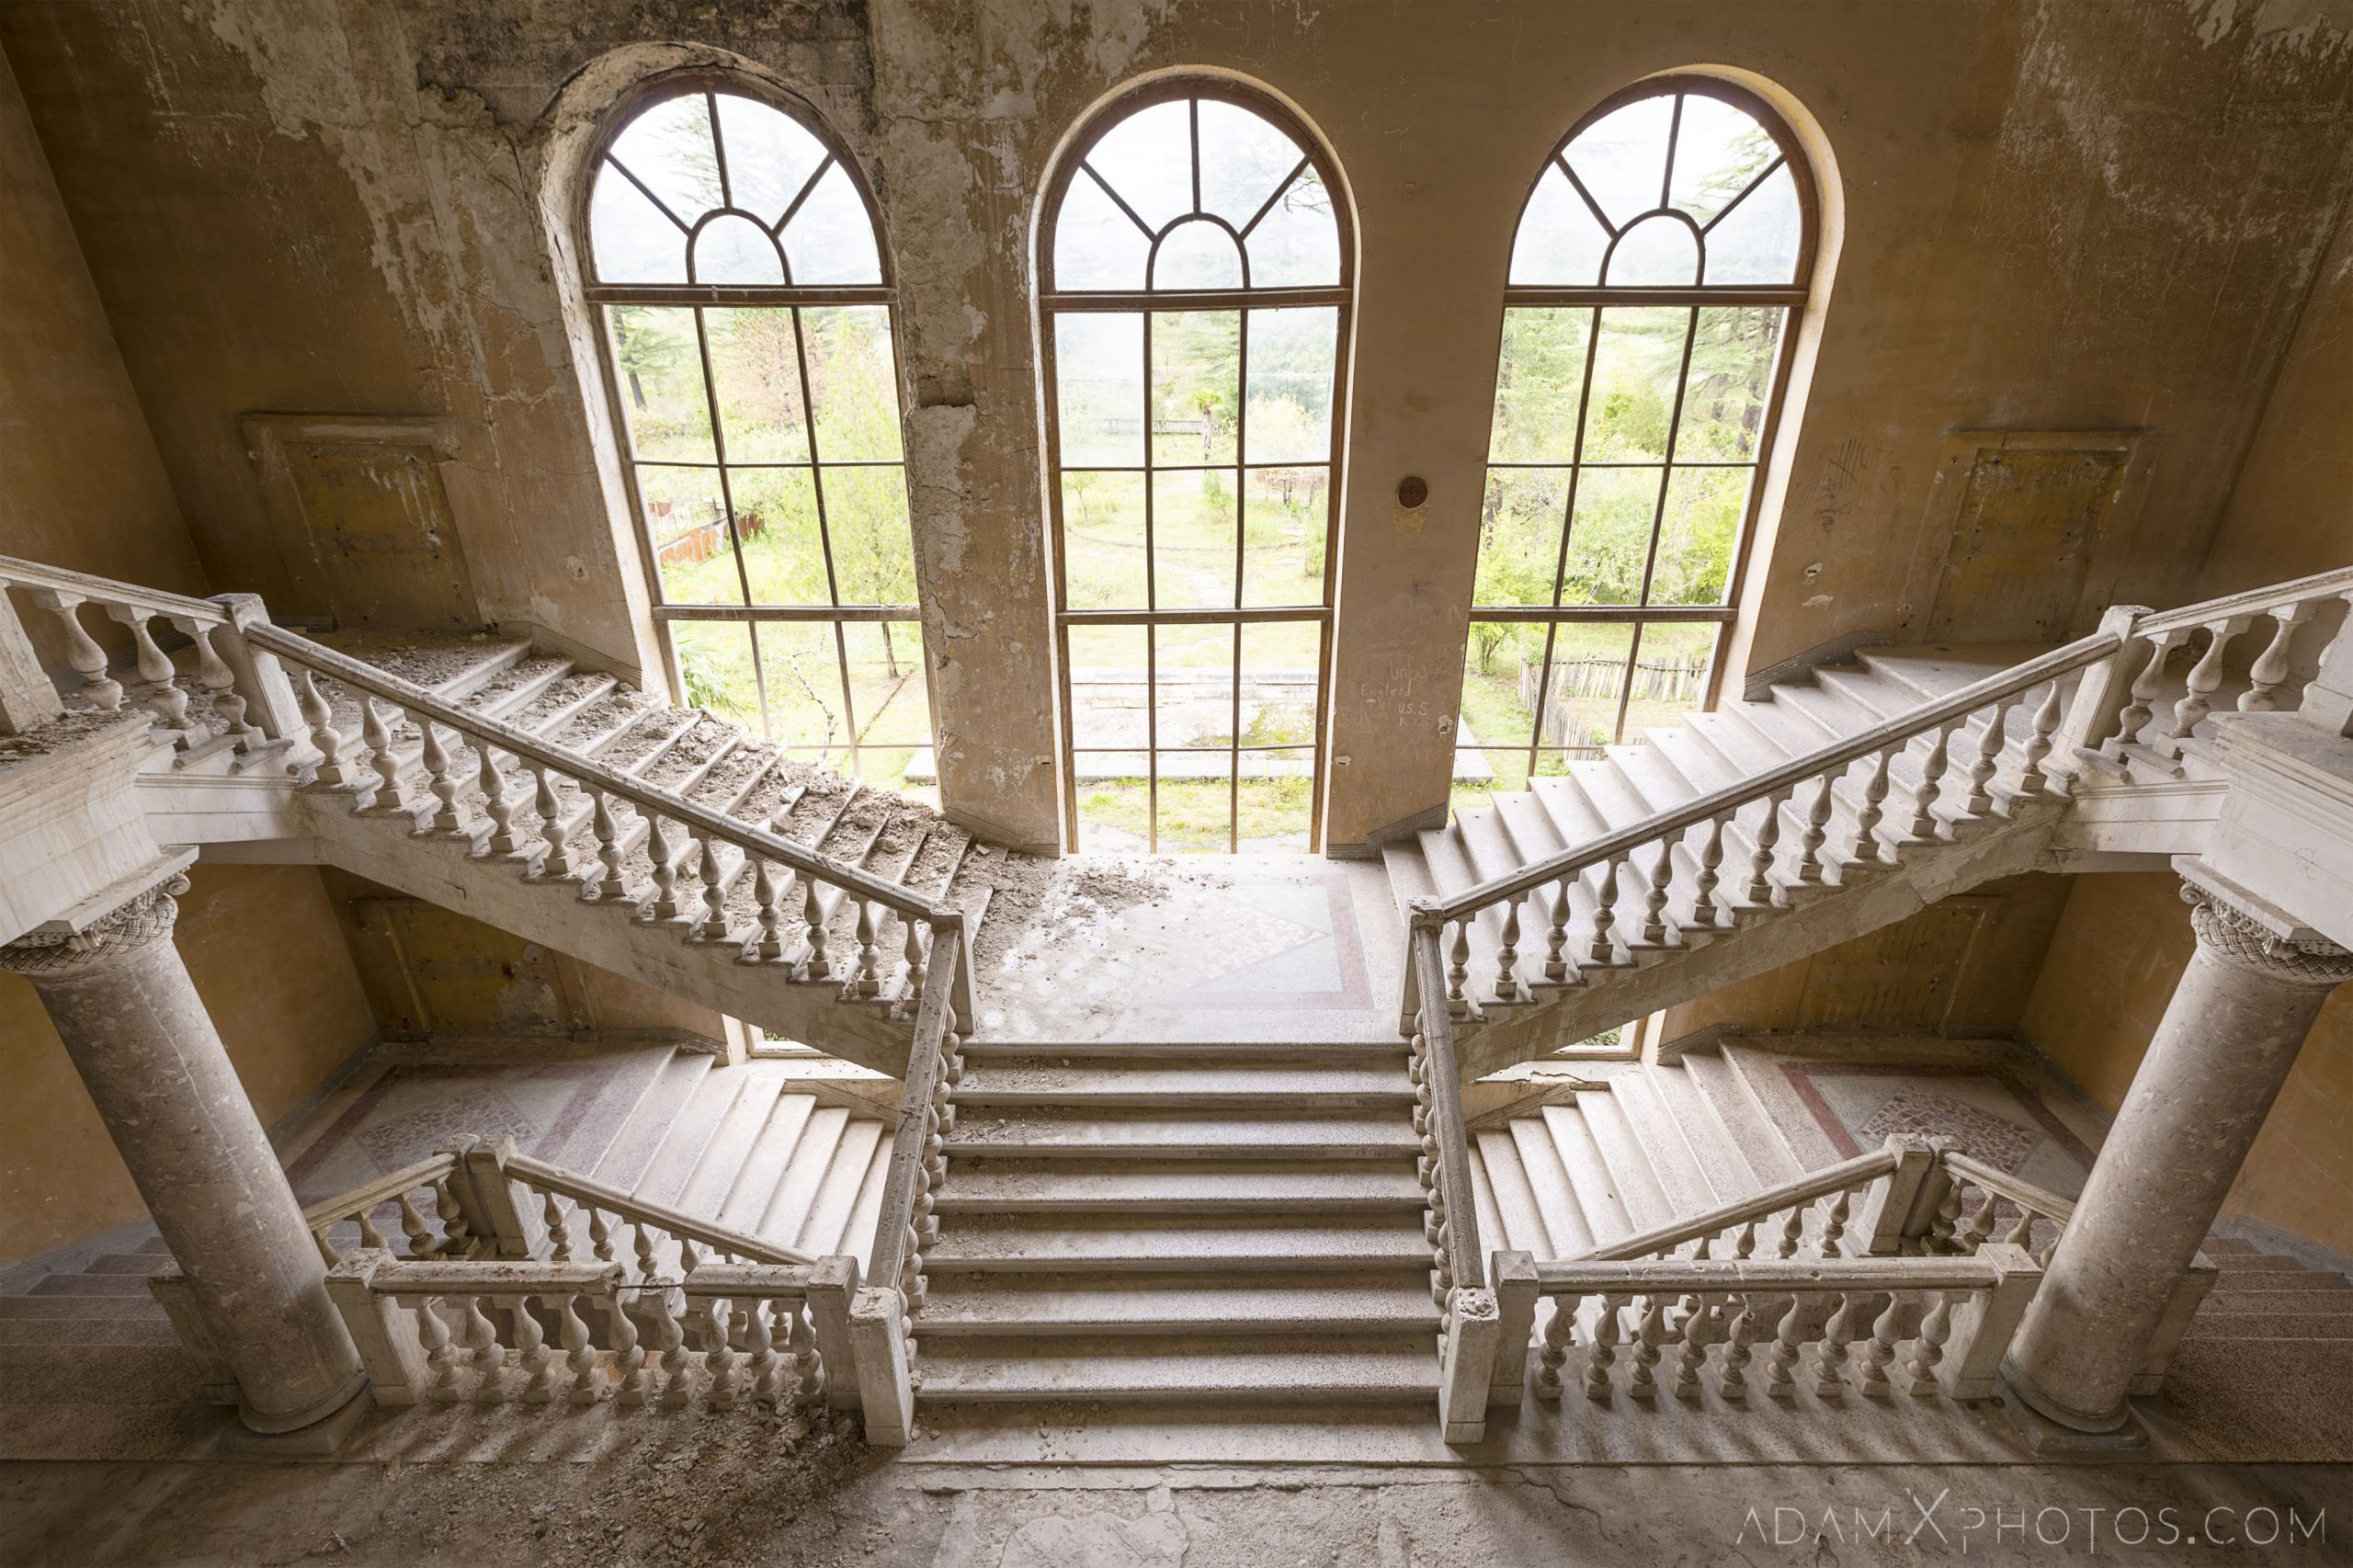 ornate beautiful split staircase stairs stone Sanatorium Imereti Tskaltubo Georgia Soviet era Adam X Urbex Urban Exploration 2018 Abandoned Access History decay ruins lost forgotten derelict location creepy haunting eerie security